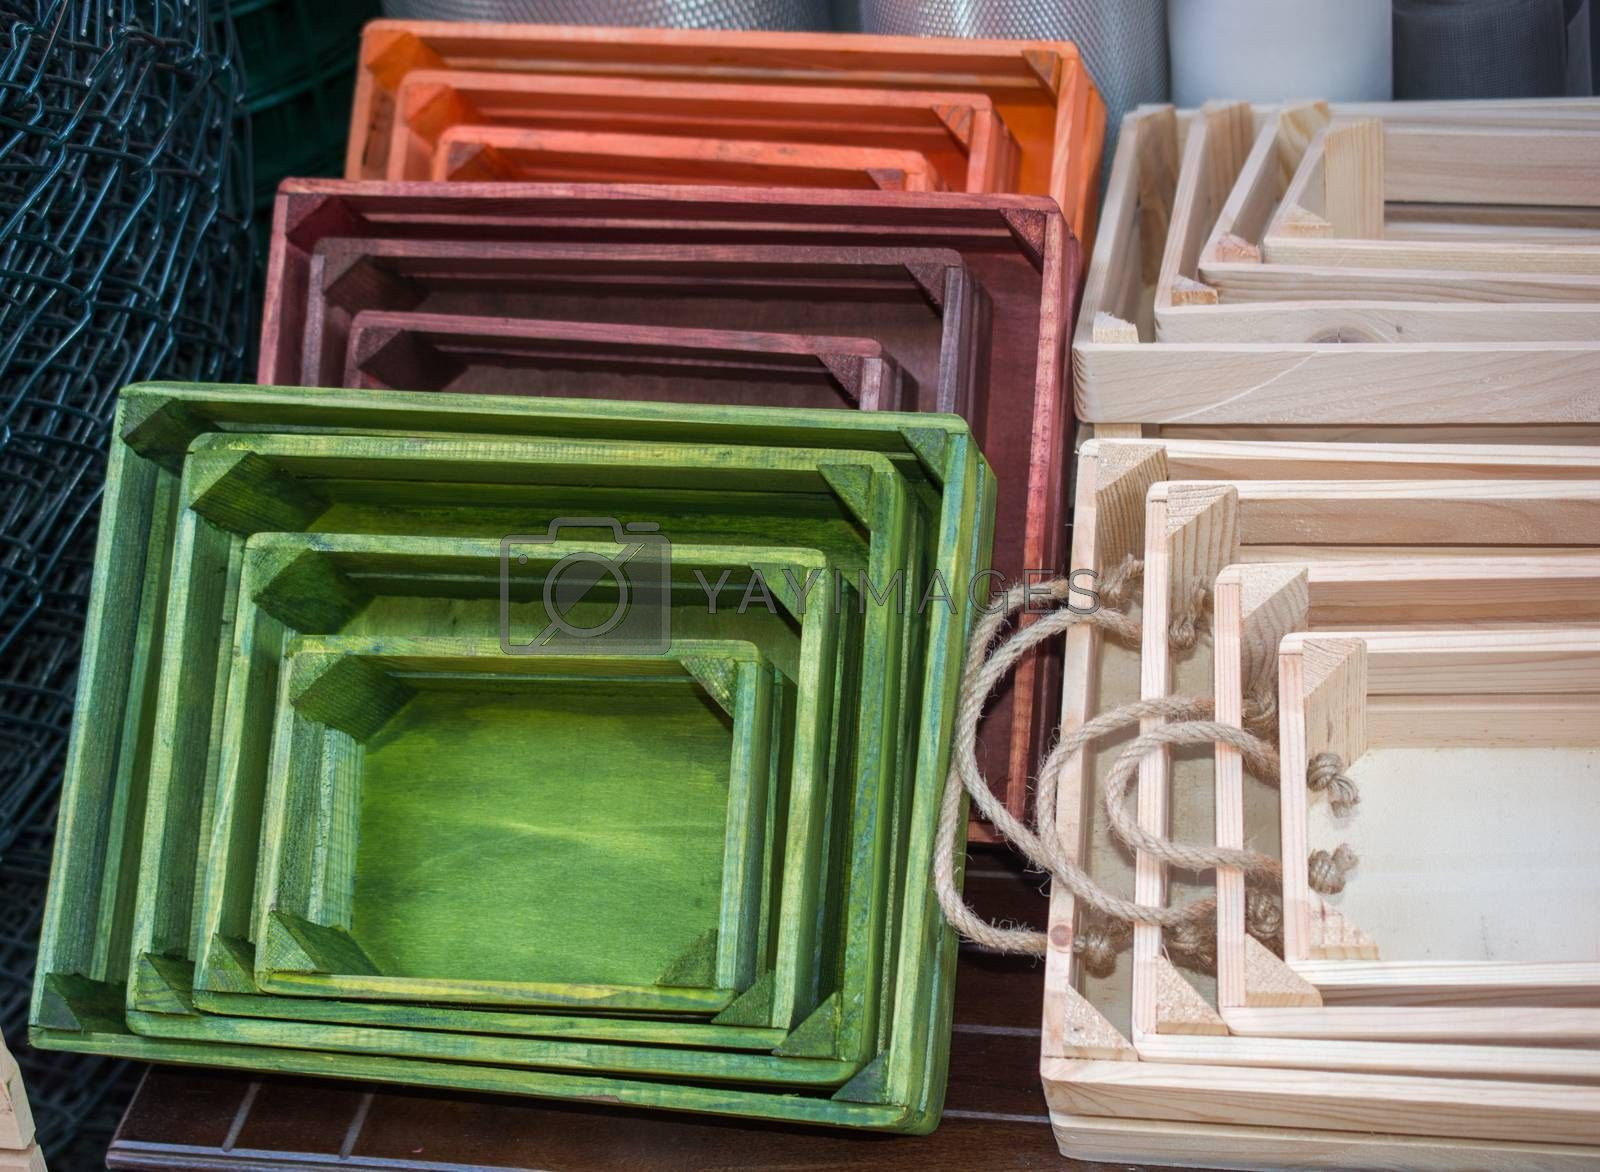 Colorful wooden crate boxes for sale in a market